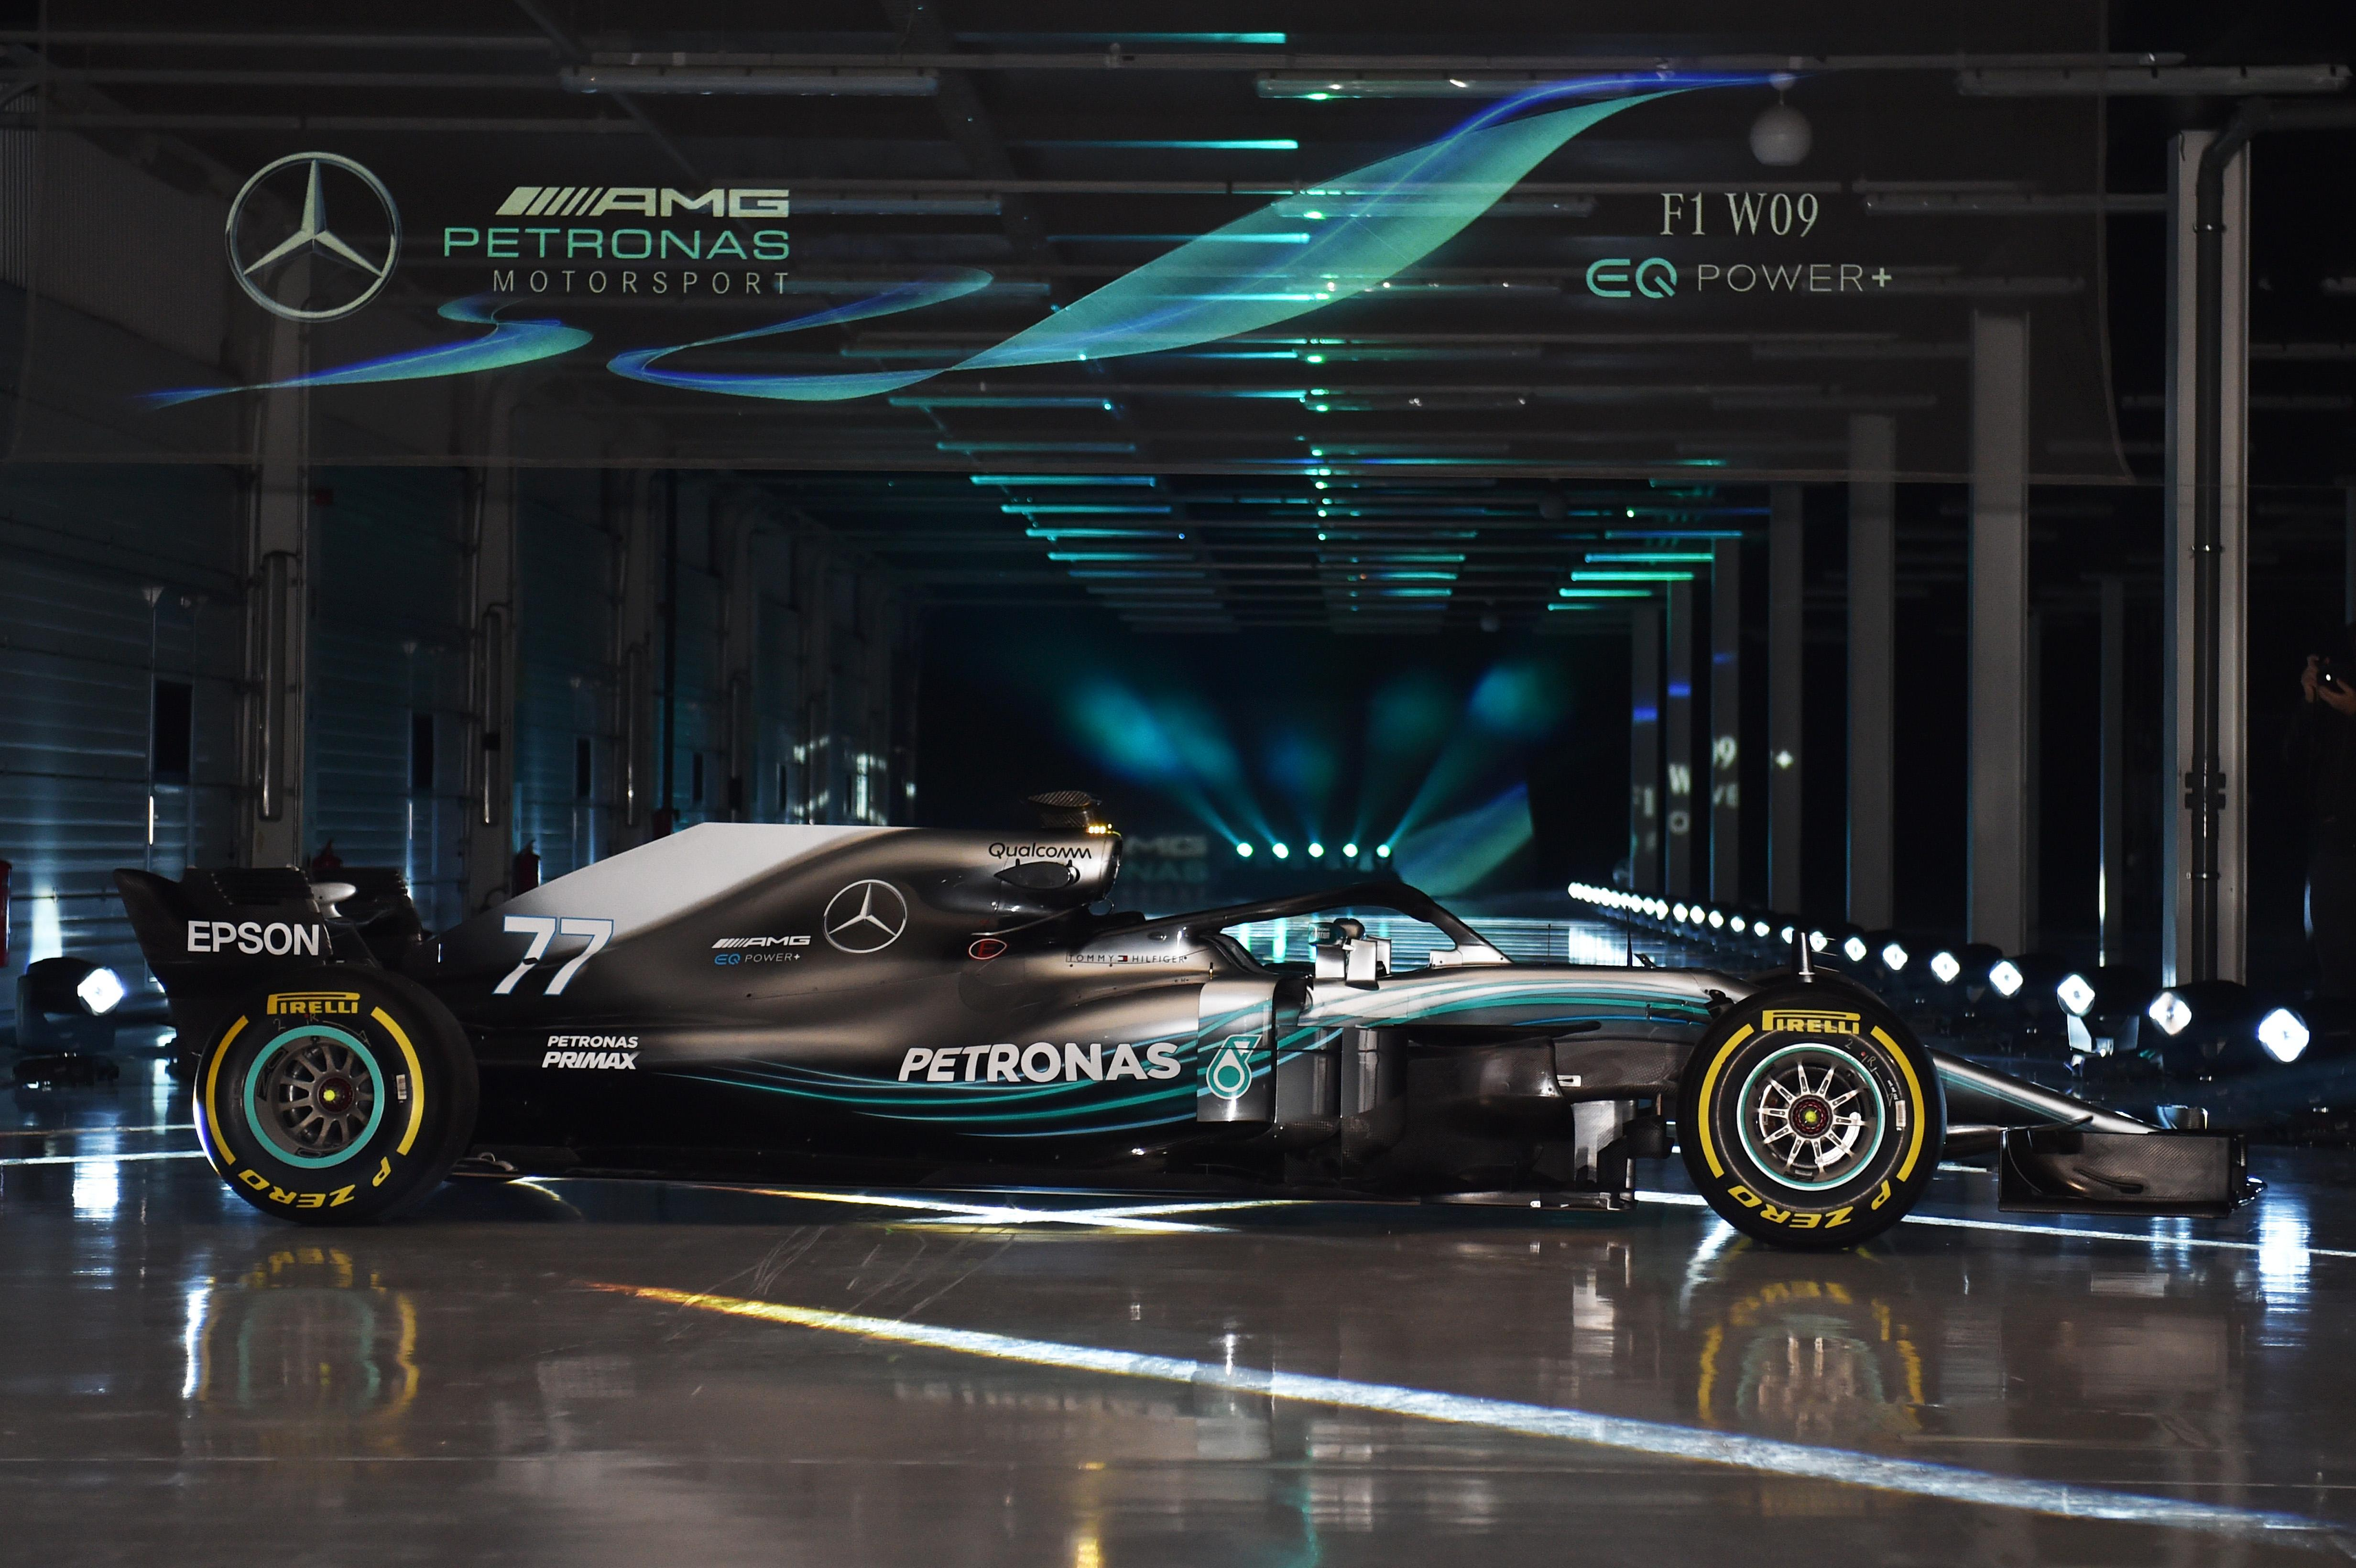 Mercedes F1 Wallpapers Top Free Mercedes F1 Backgrounds Wallpaperaccess